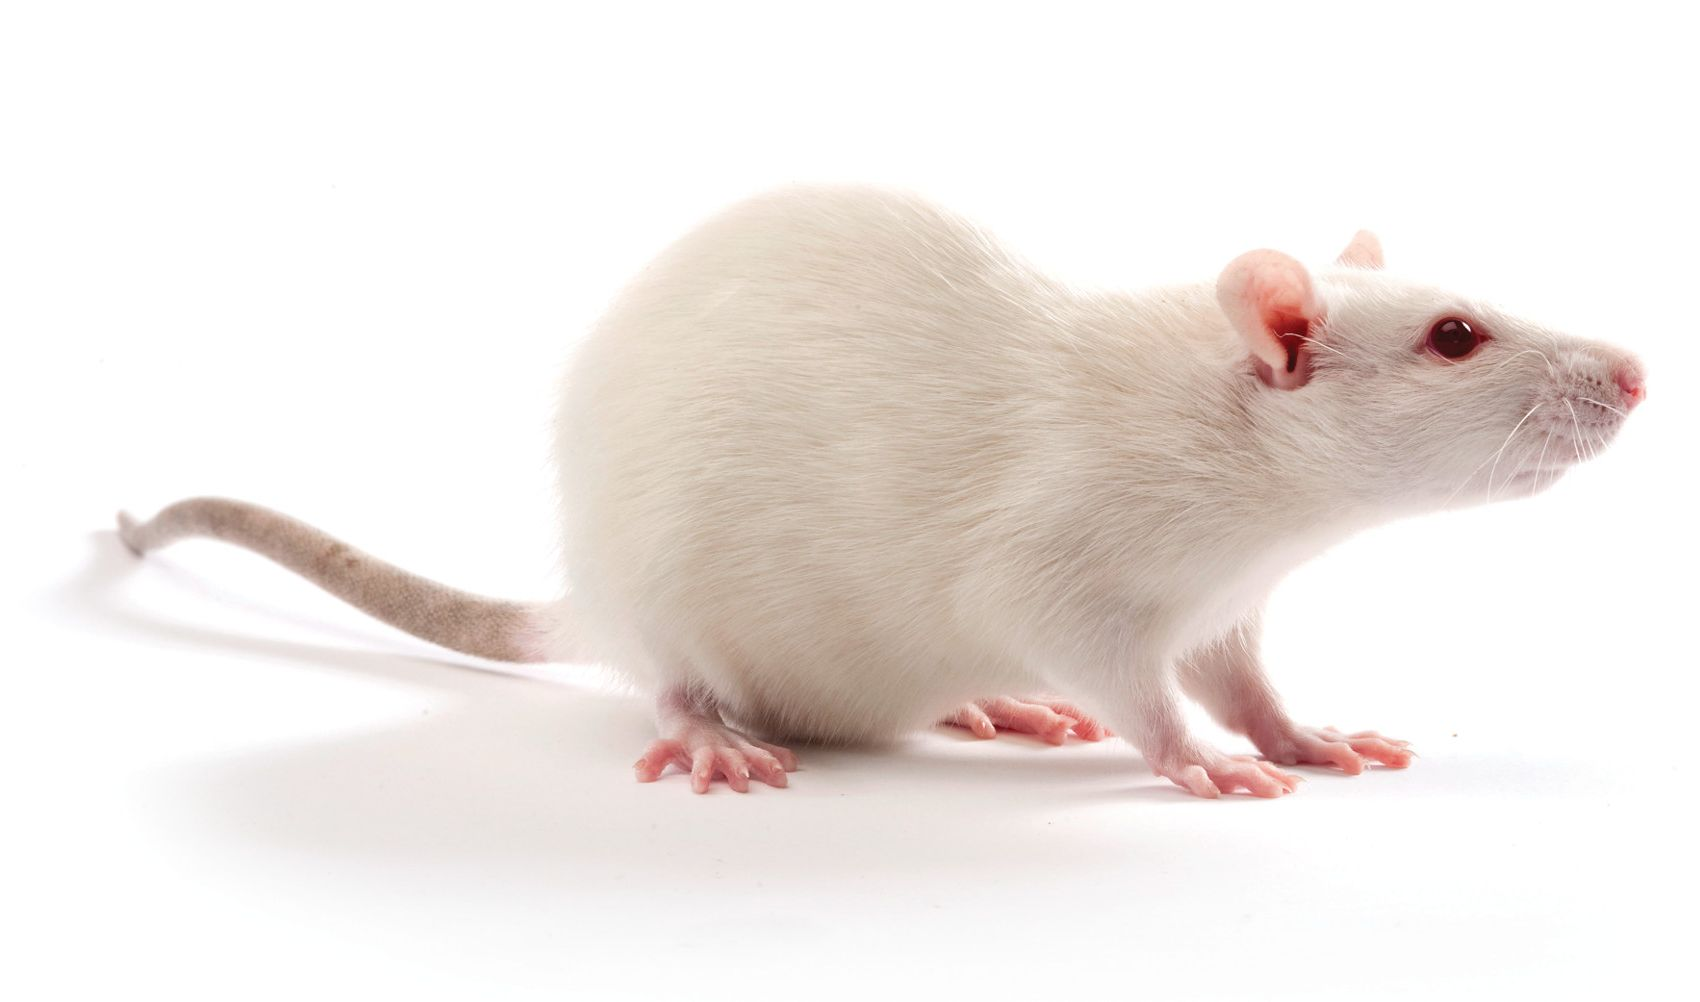 One white rat in front of a white background.